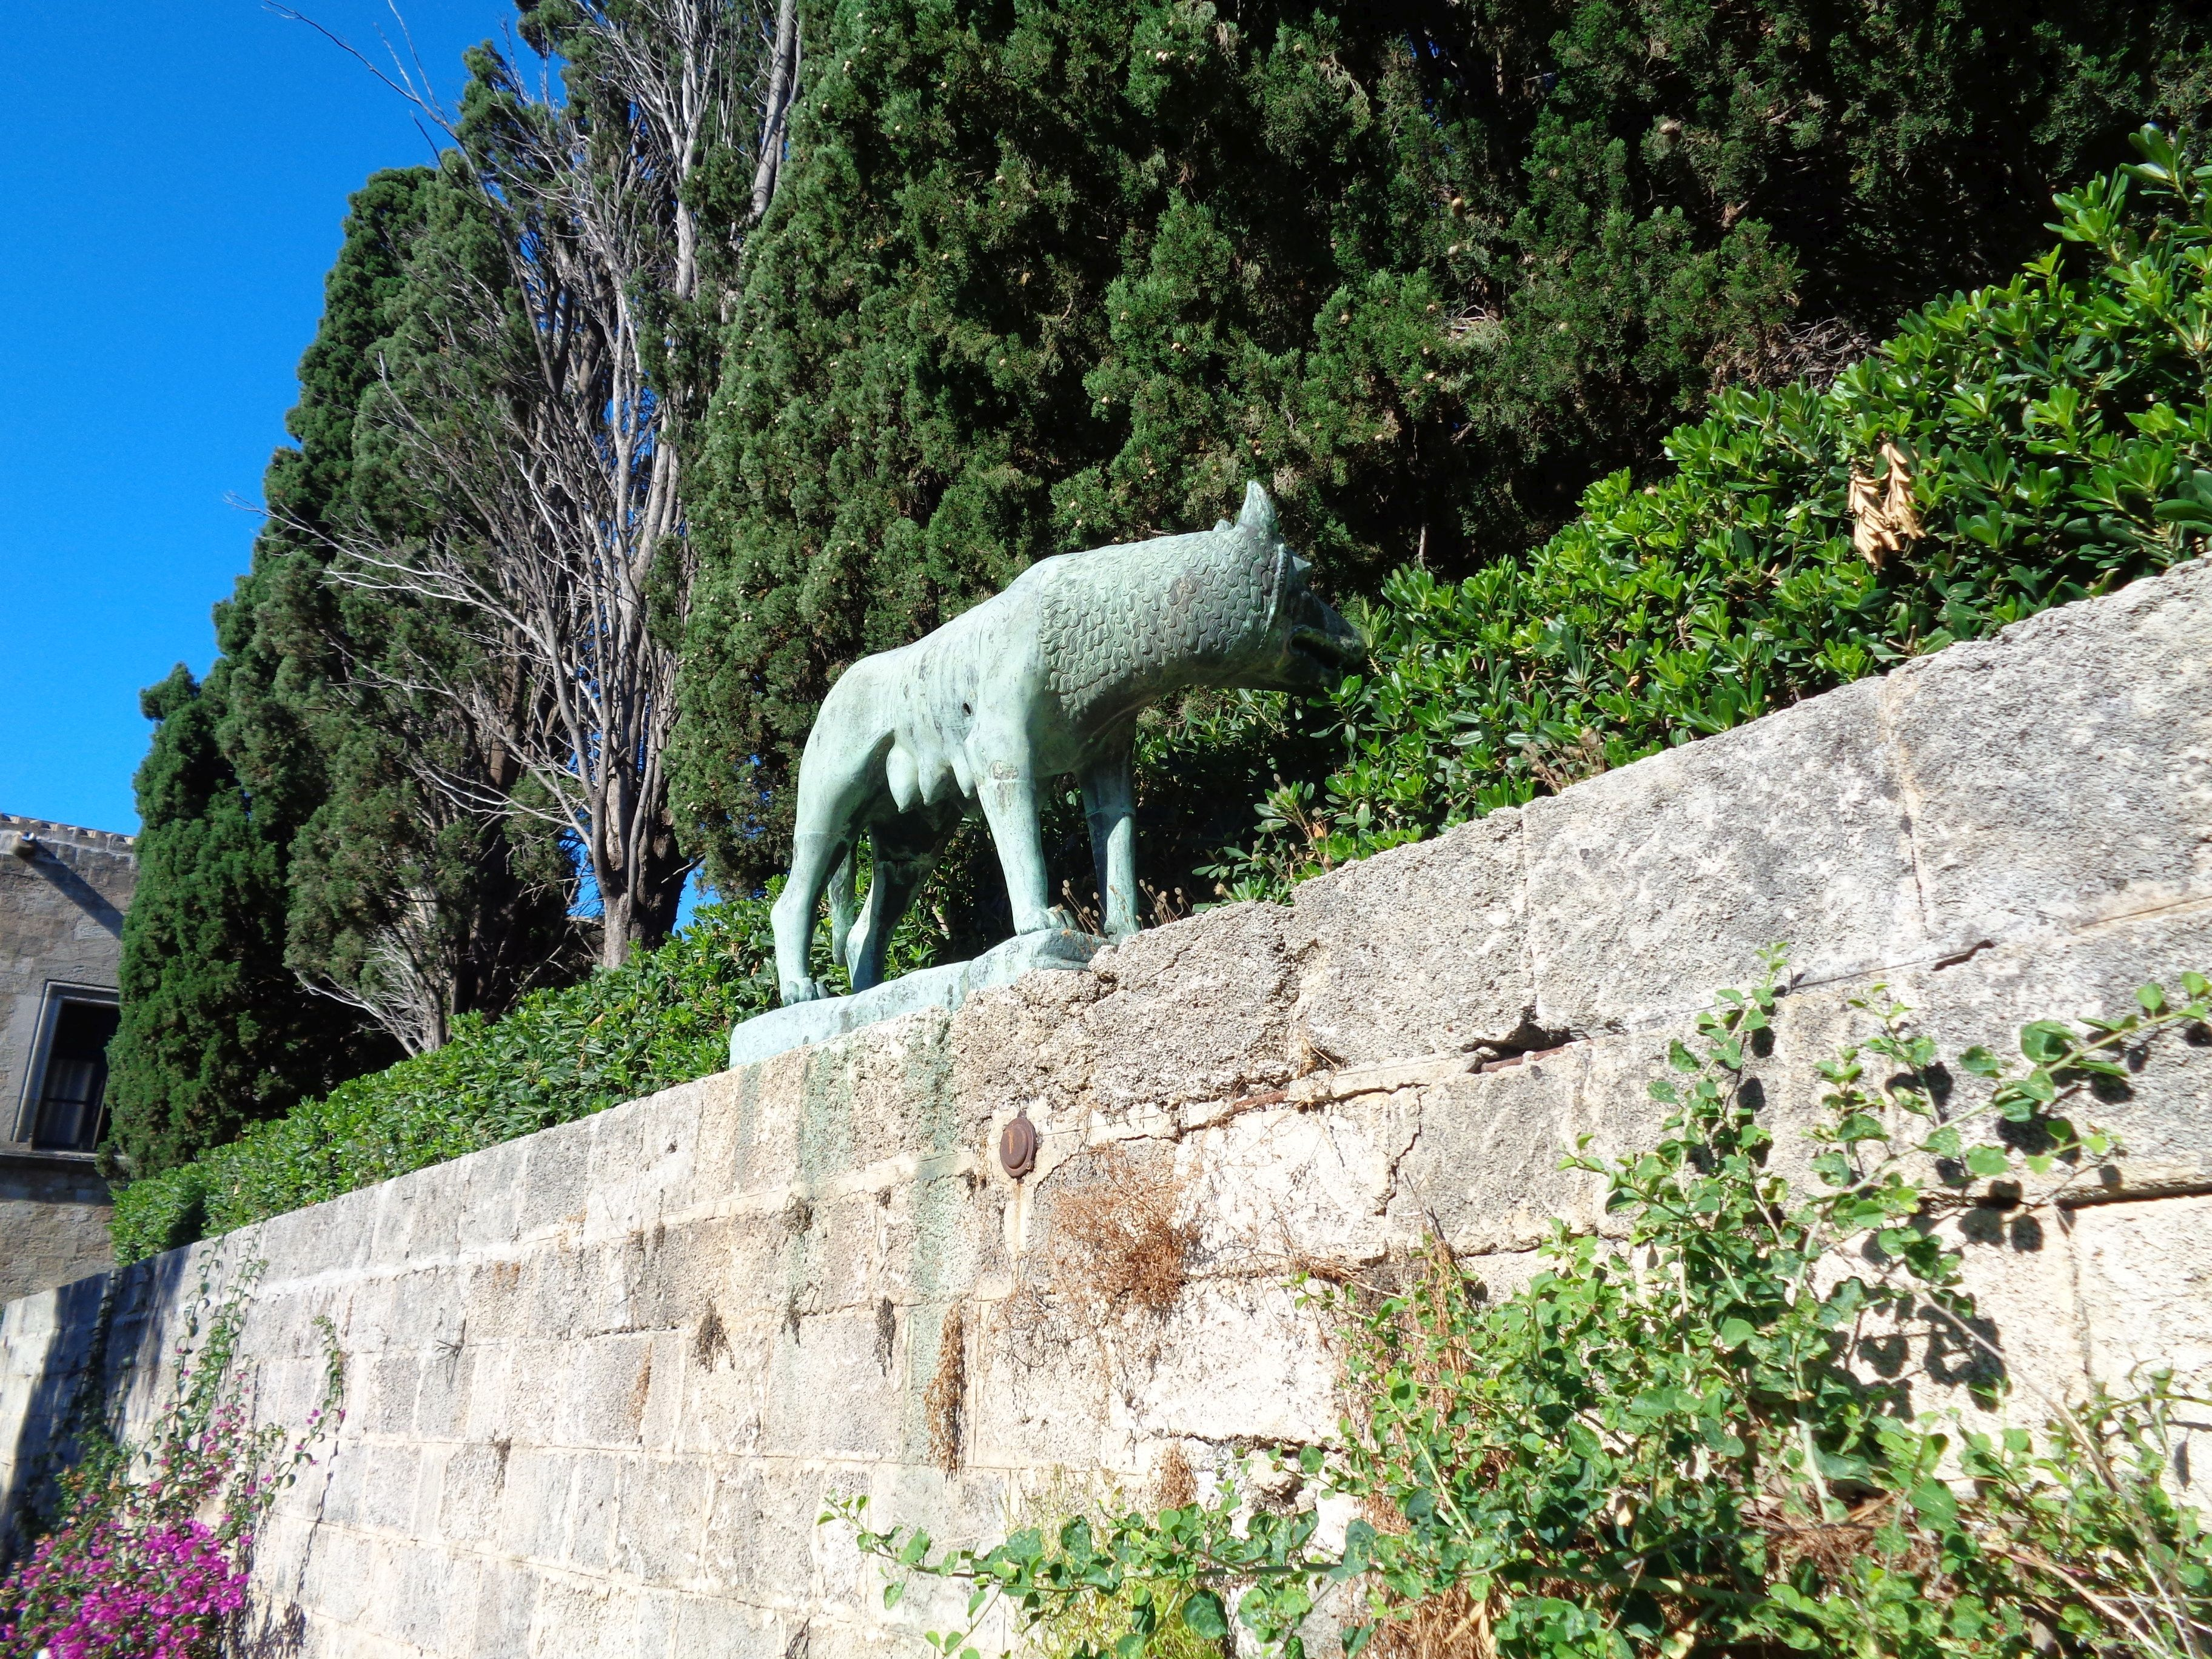 I can well imagine that where the Roman Wolf is, Helios looked at the ports of Rhodes.